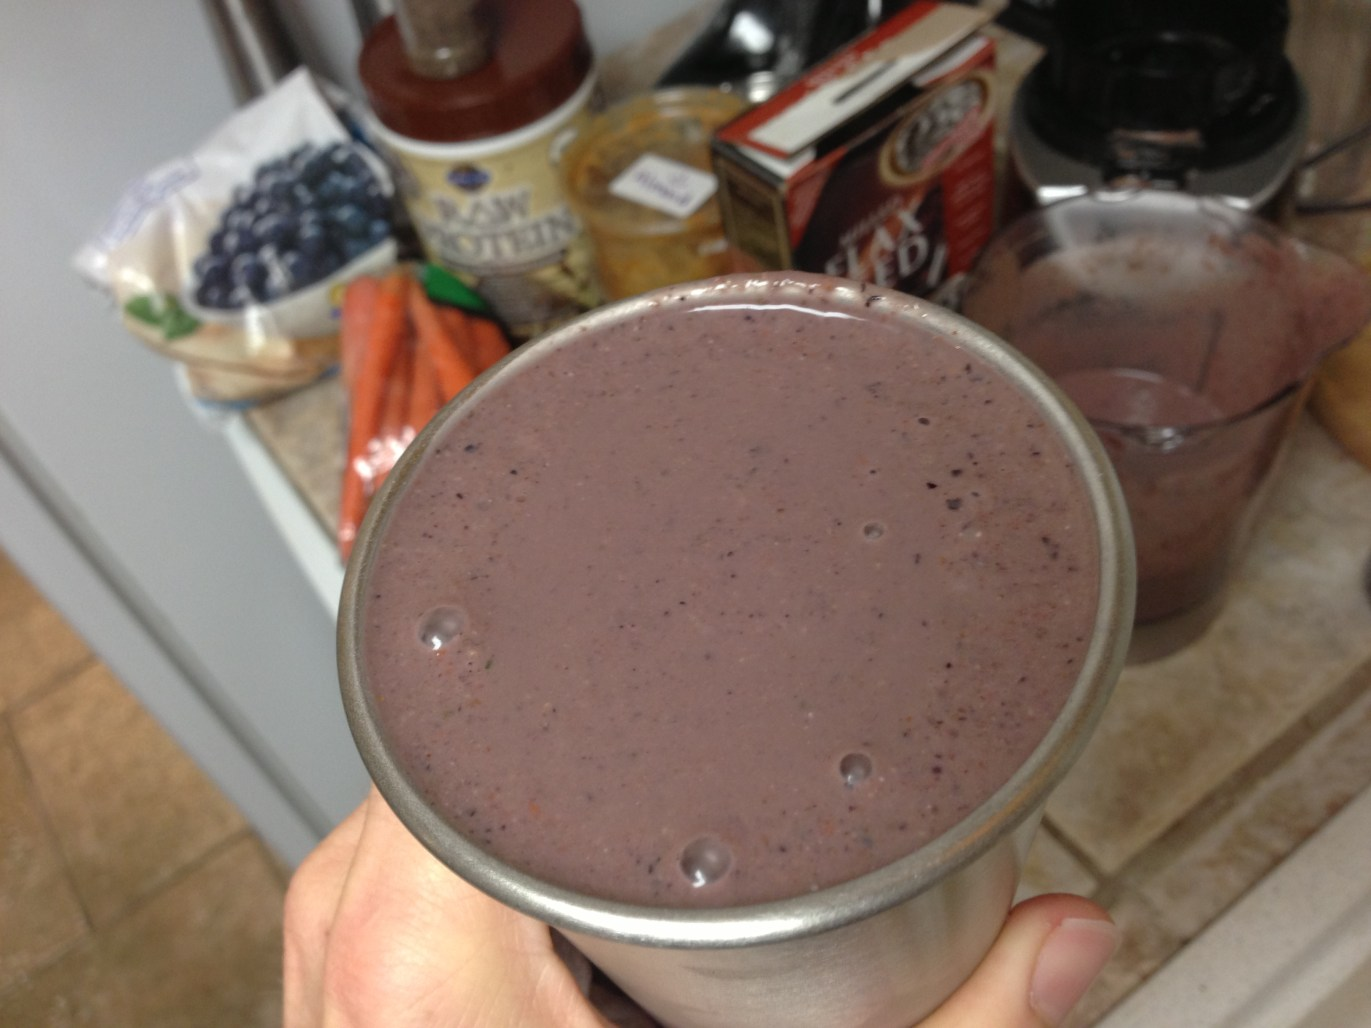 Nathan's Post Run Smoothie